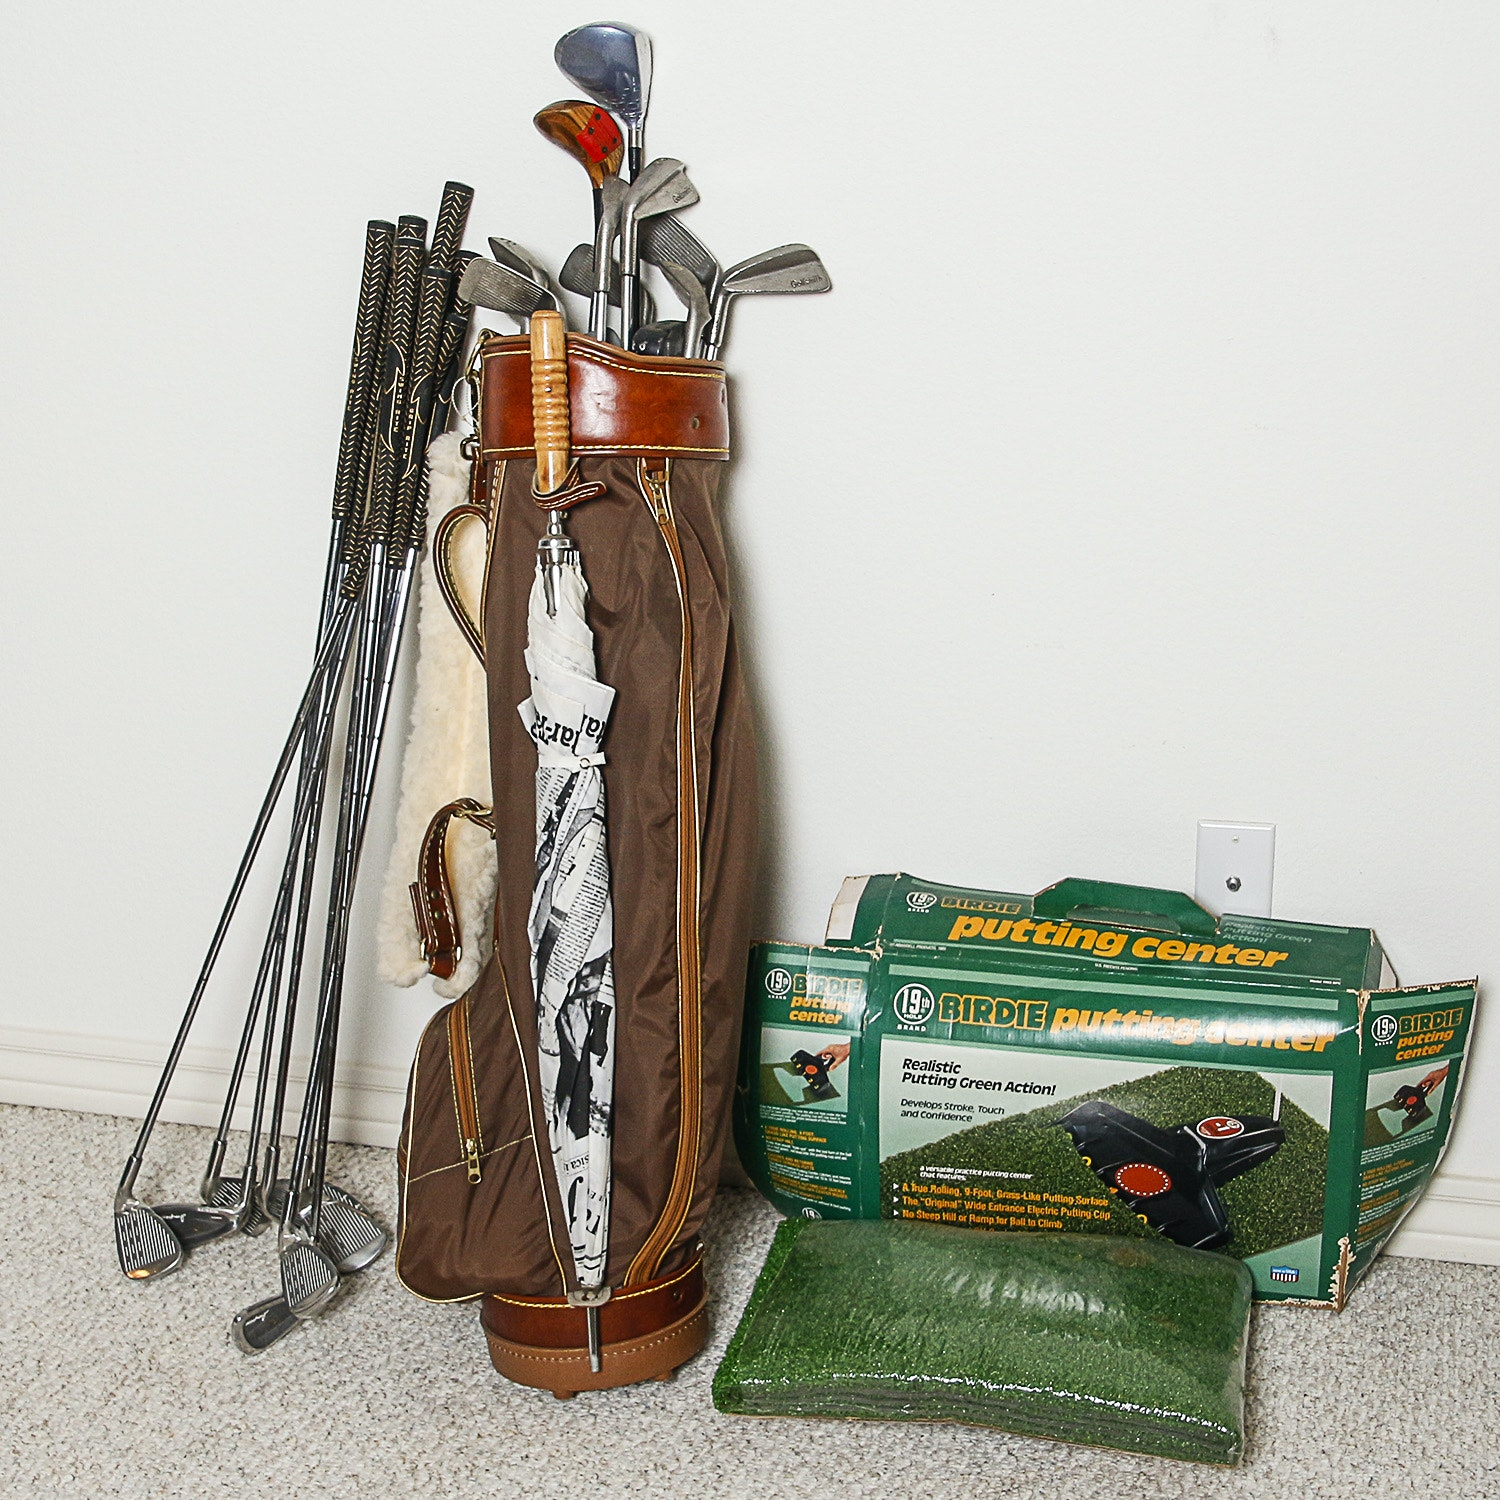 Golf Clubs, Bag and Birdie Putting Center